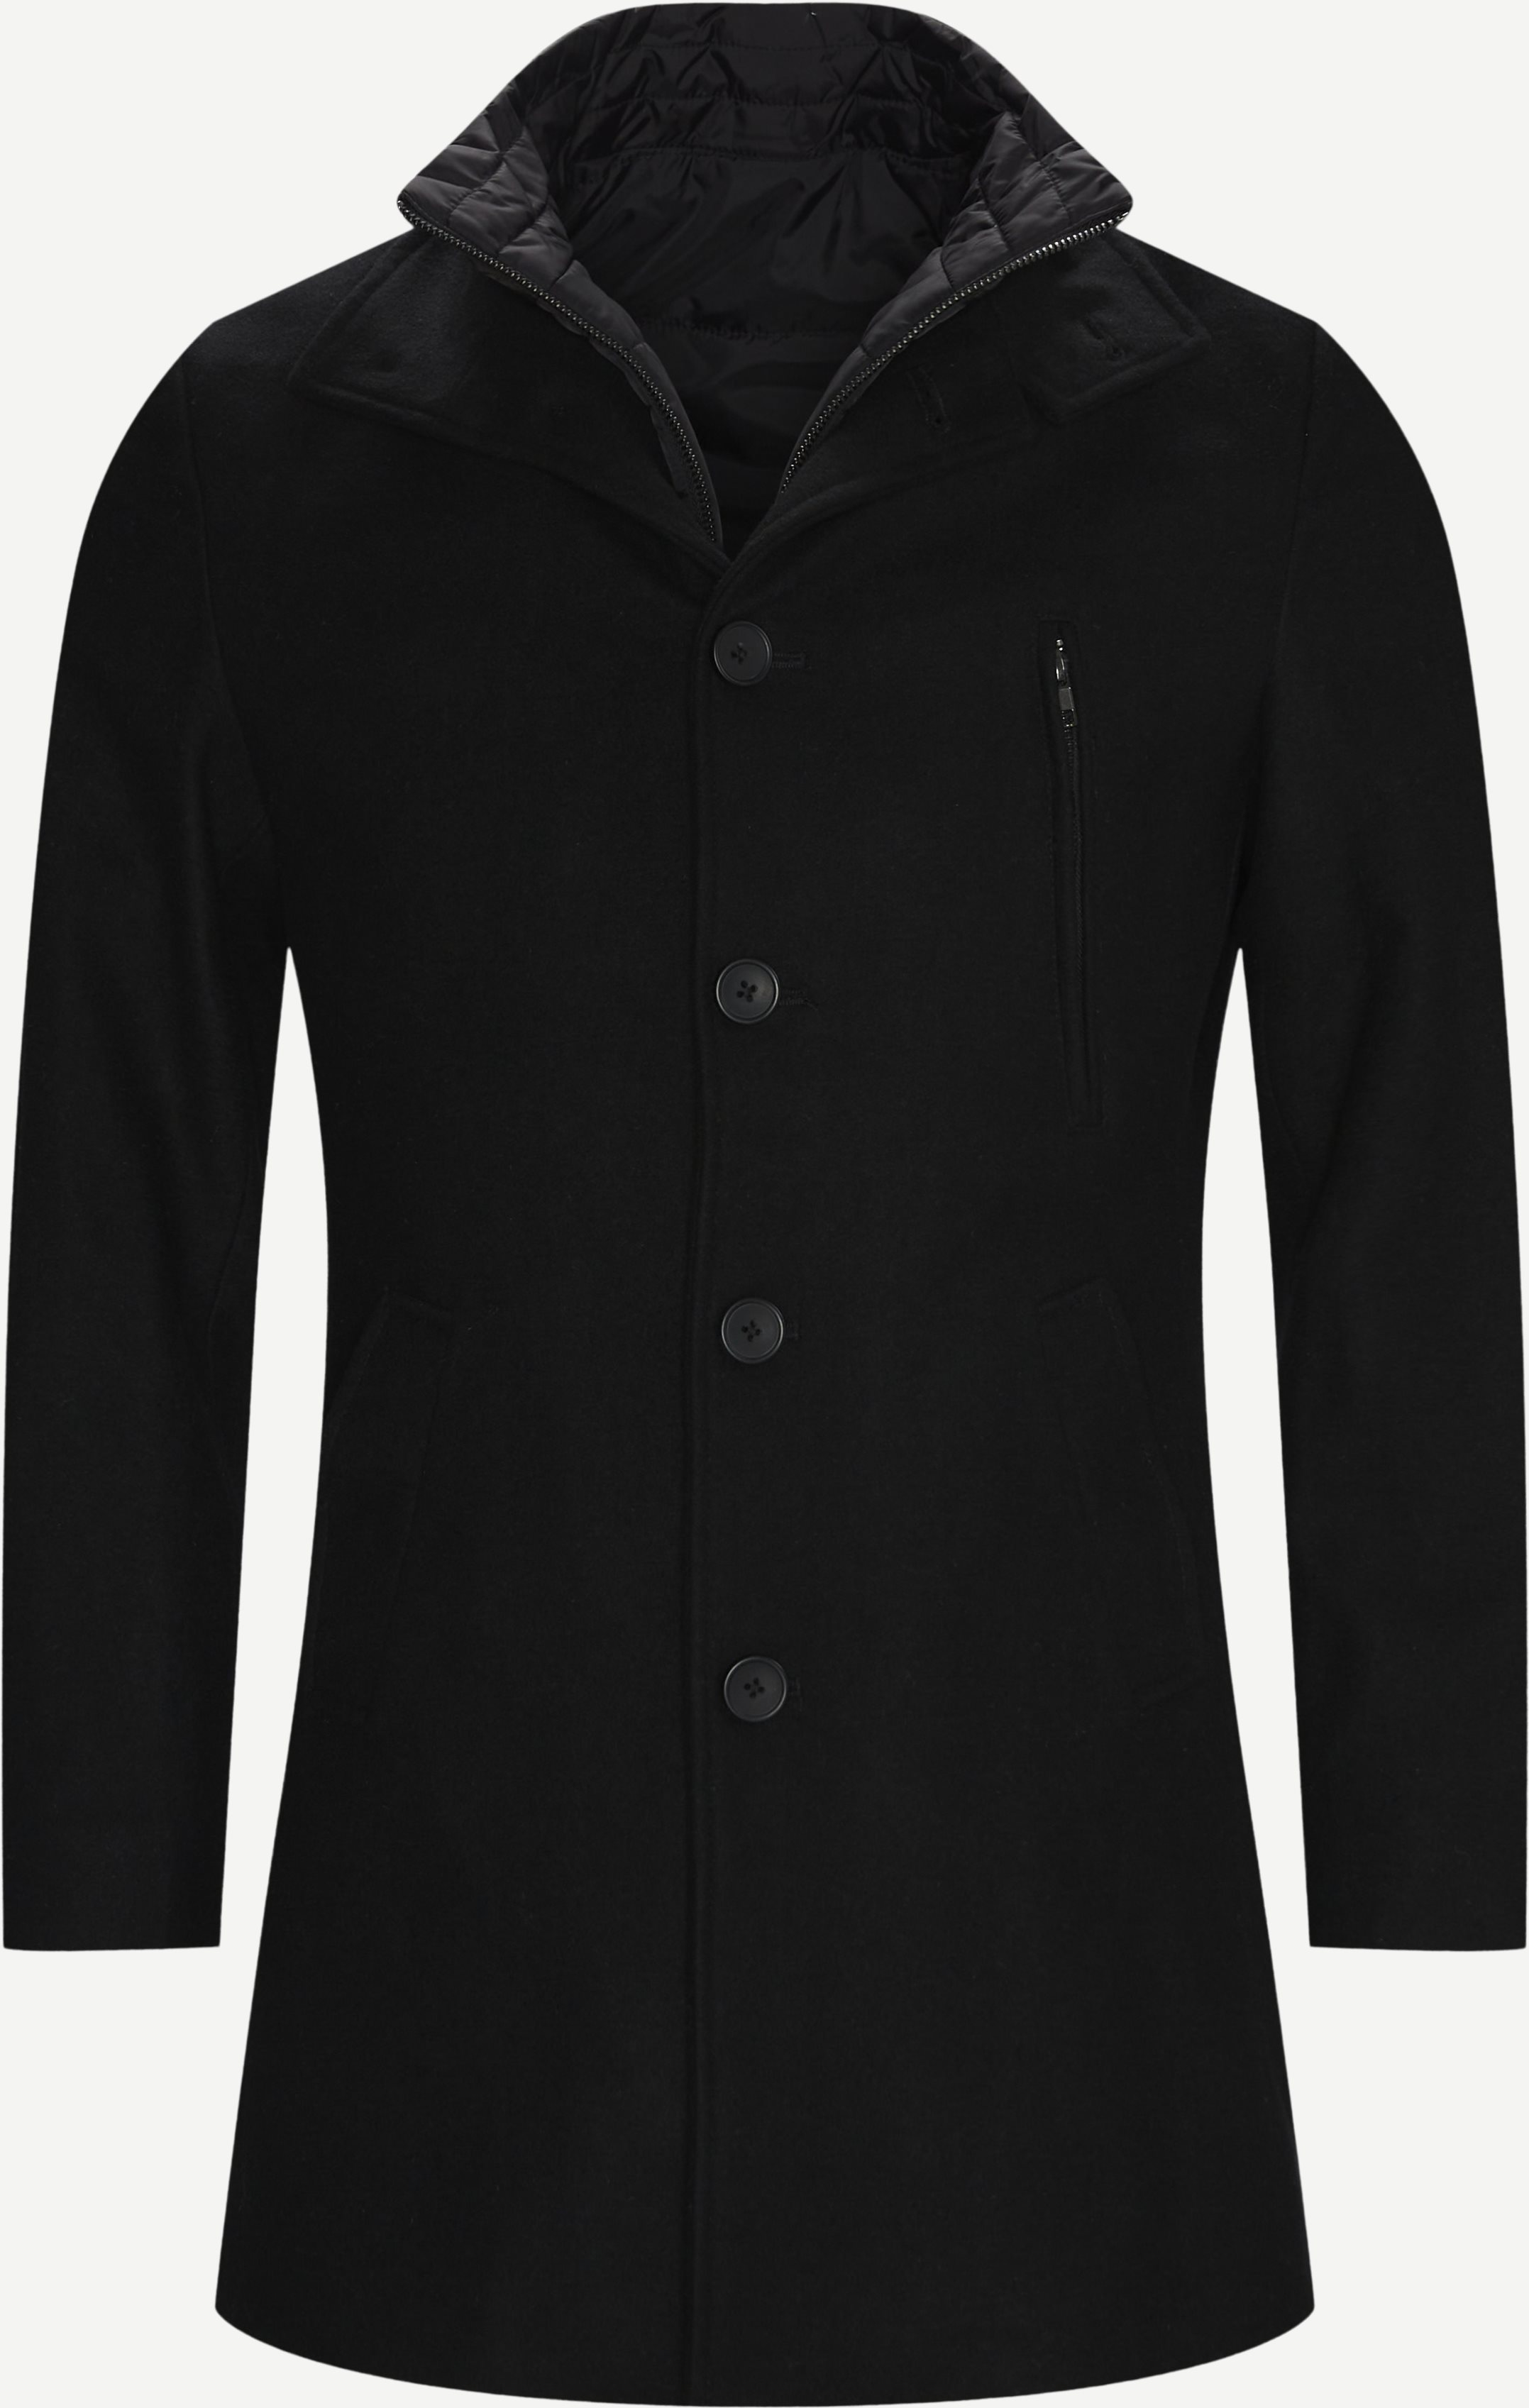 Ontario Jacket - Jackets - Regular - Black